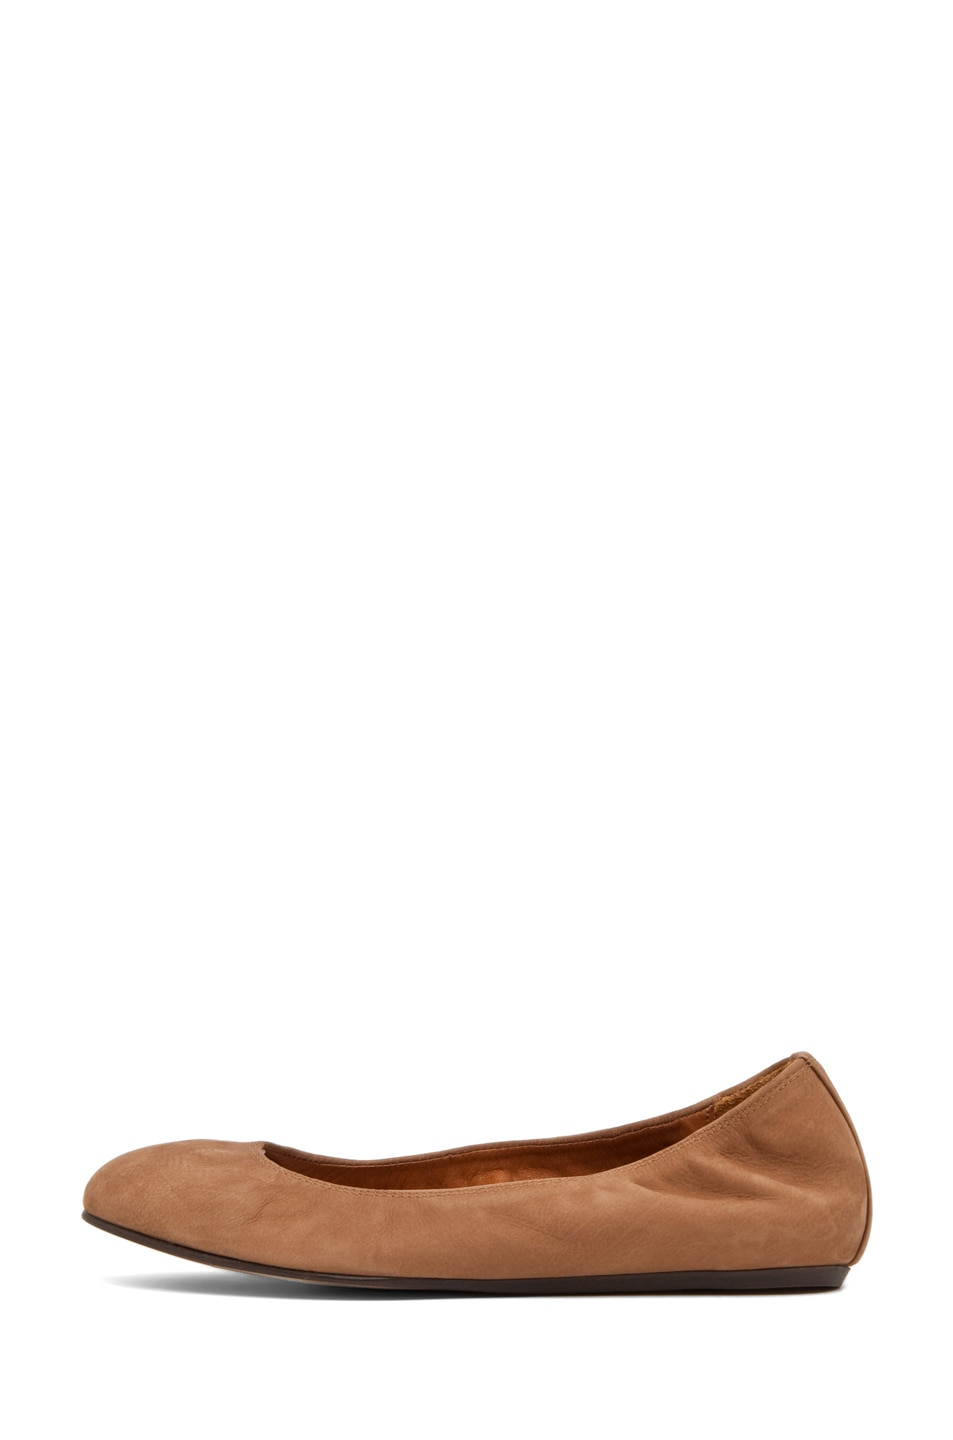 Image 1 of Lanvin Ballerina Flat in Brown